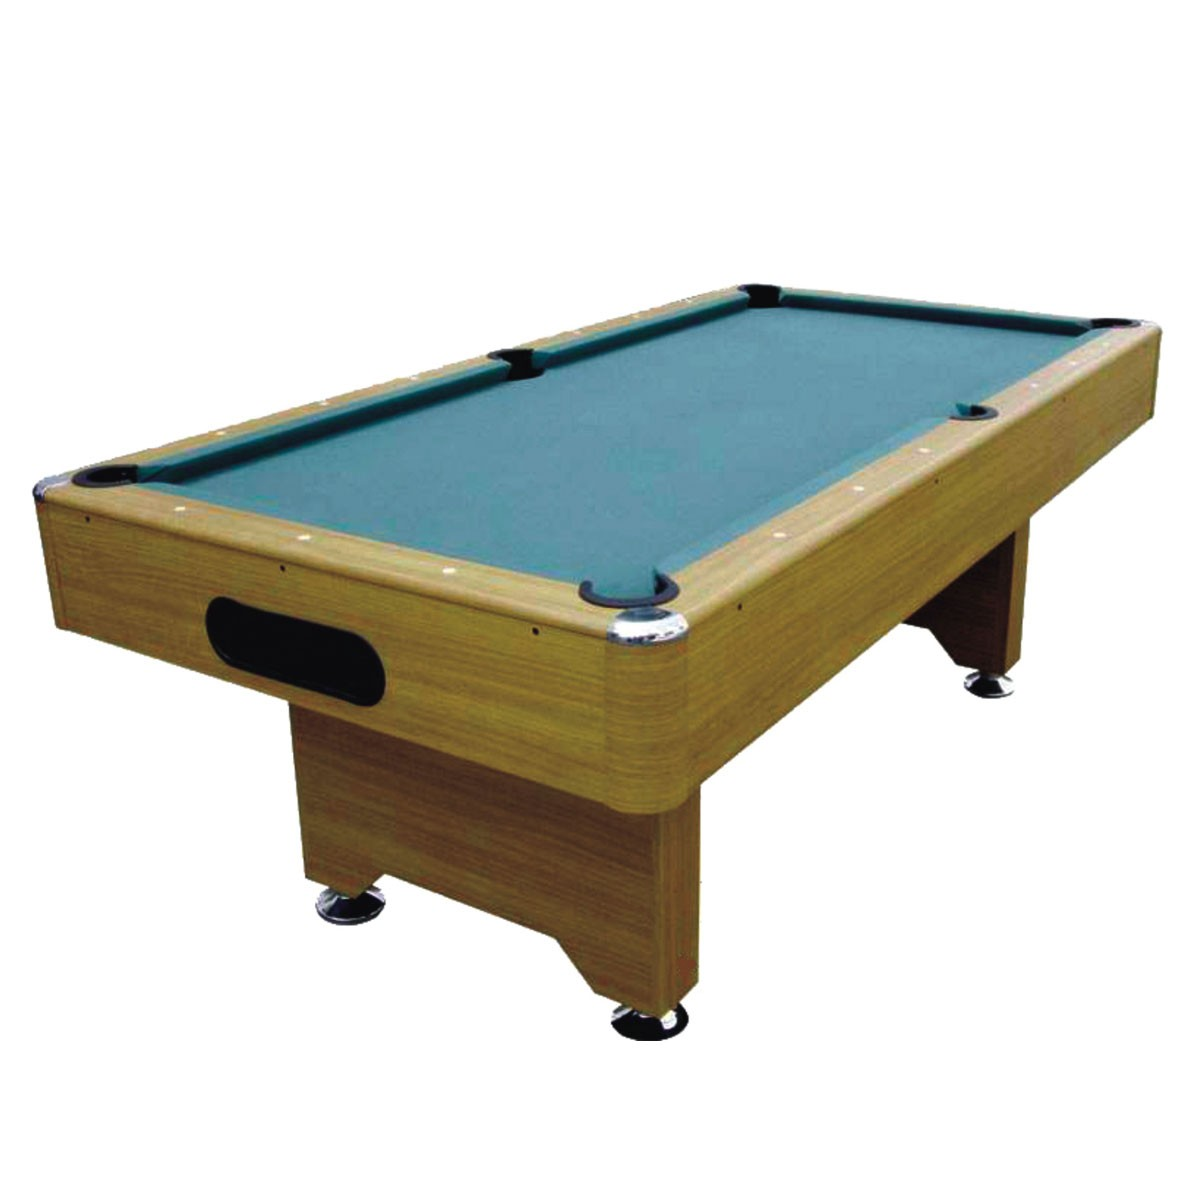 8-Foot Pool Table with Accessories (ZLB-P12)